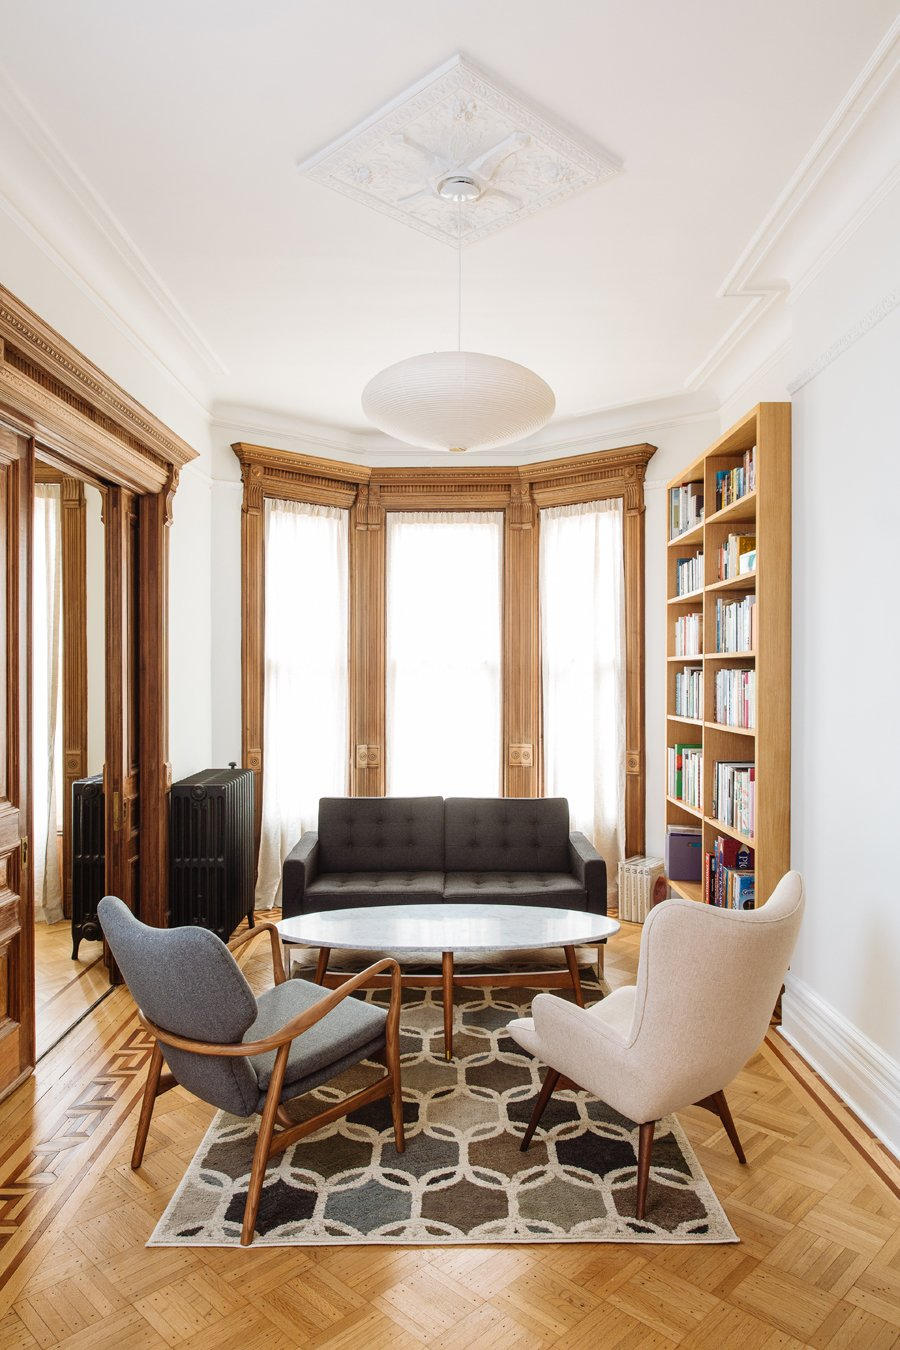 Living Room, Recliner, Coffee Tables, Chair, Sofa, Pendant Lighting, Accent Lighting, Medium Hardwood Floor, and Light Hardwood Floor Study/Library   Brooklyn Brownstone by Sonya Lee Architect llc